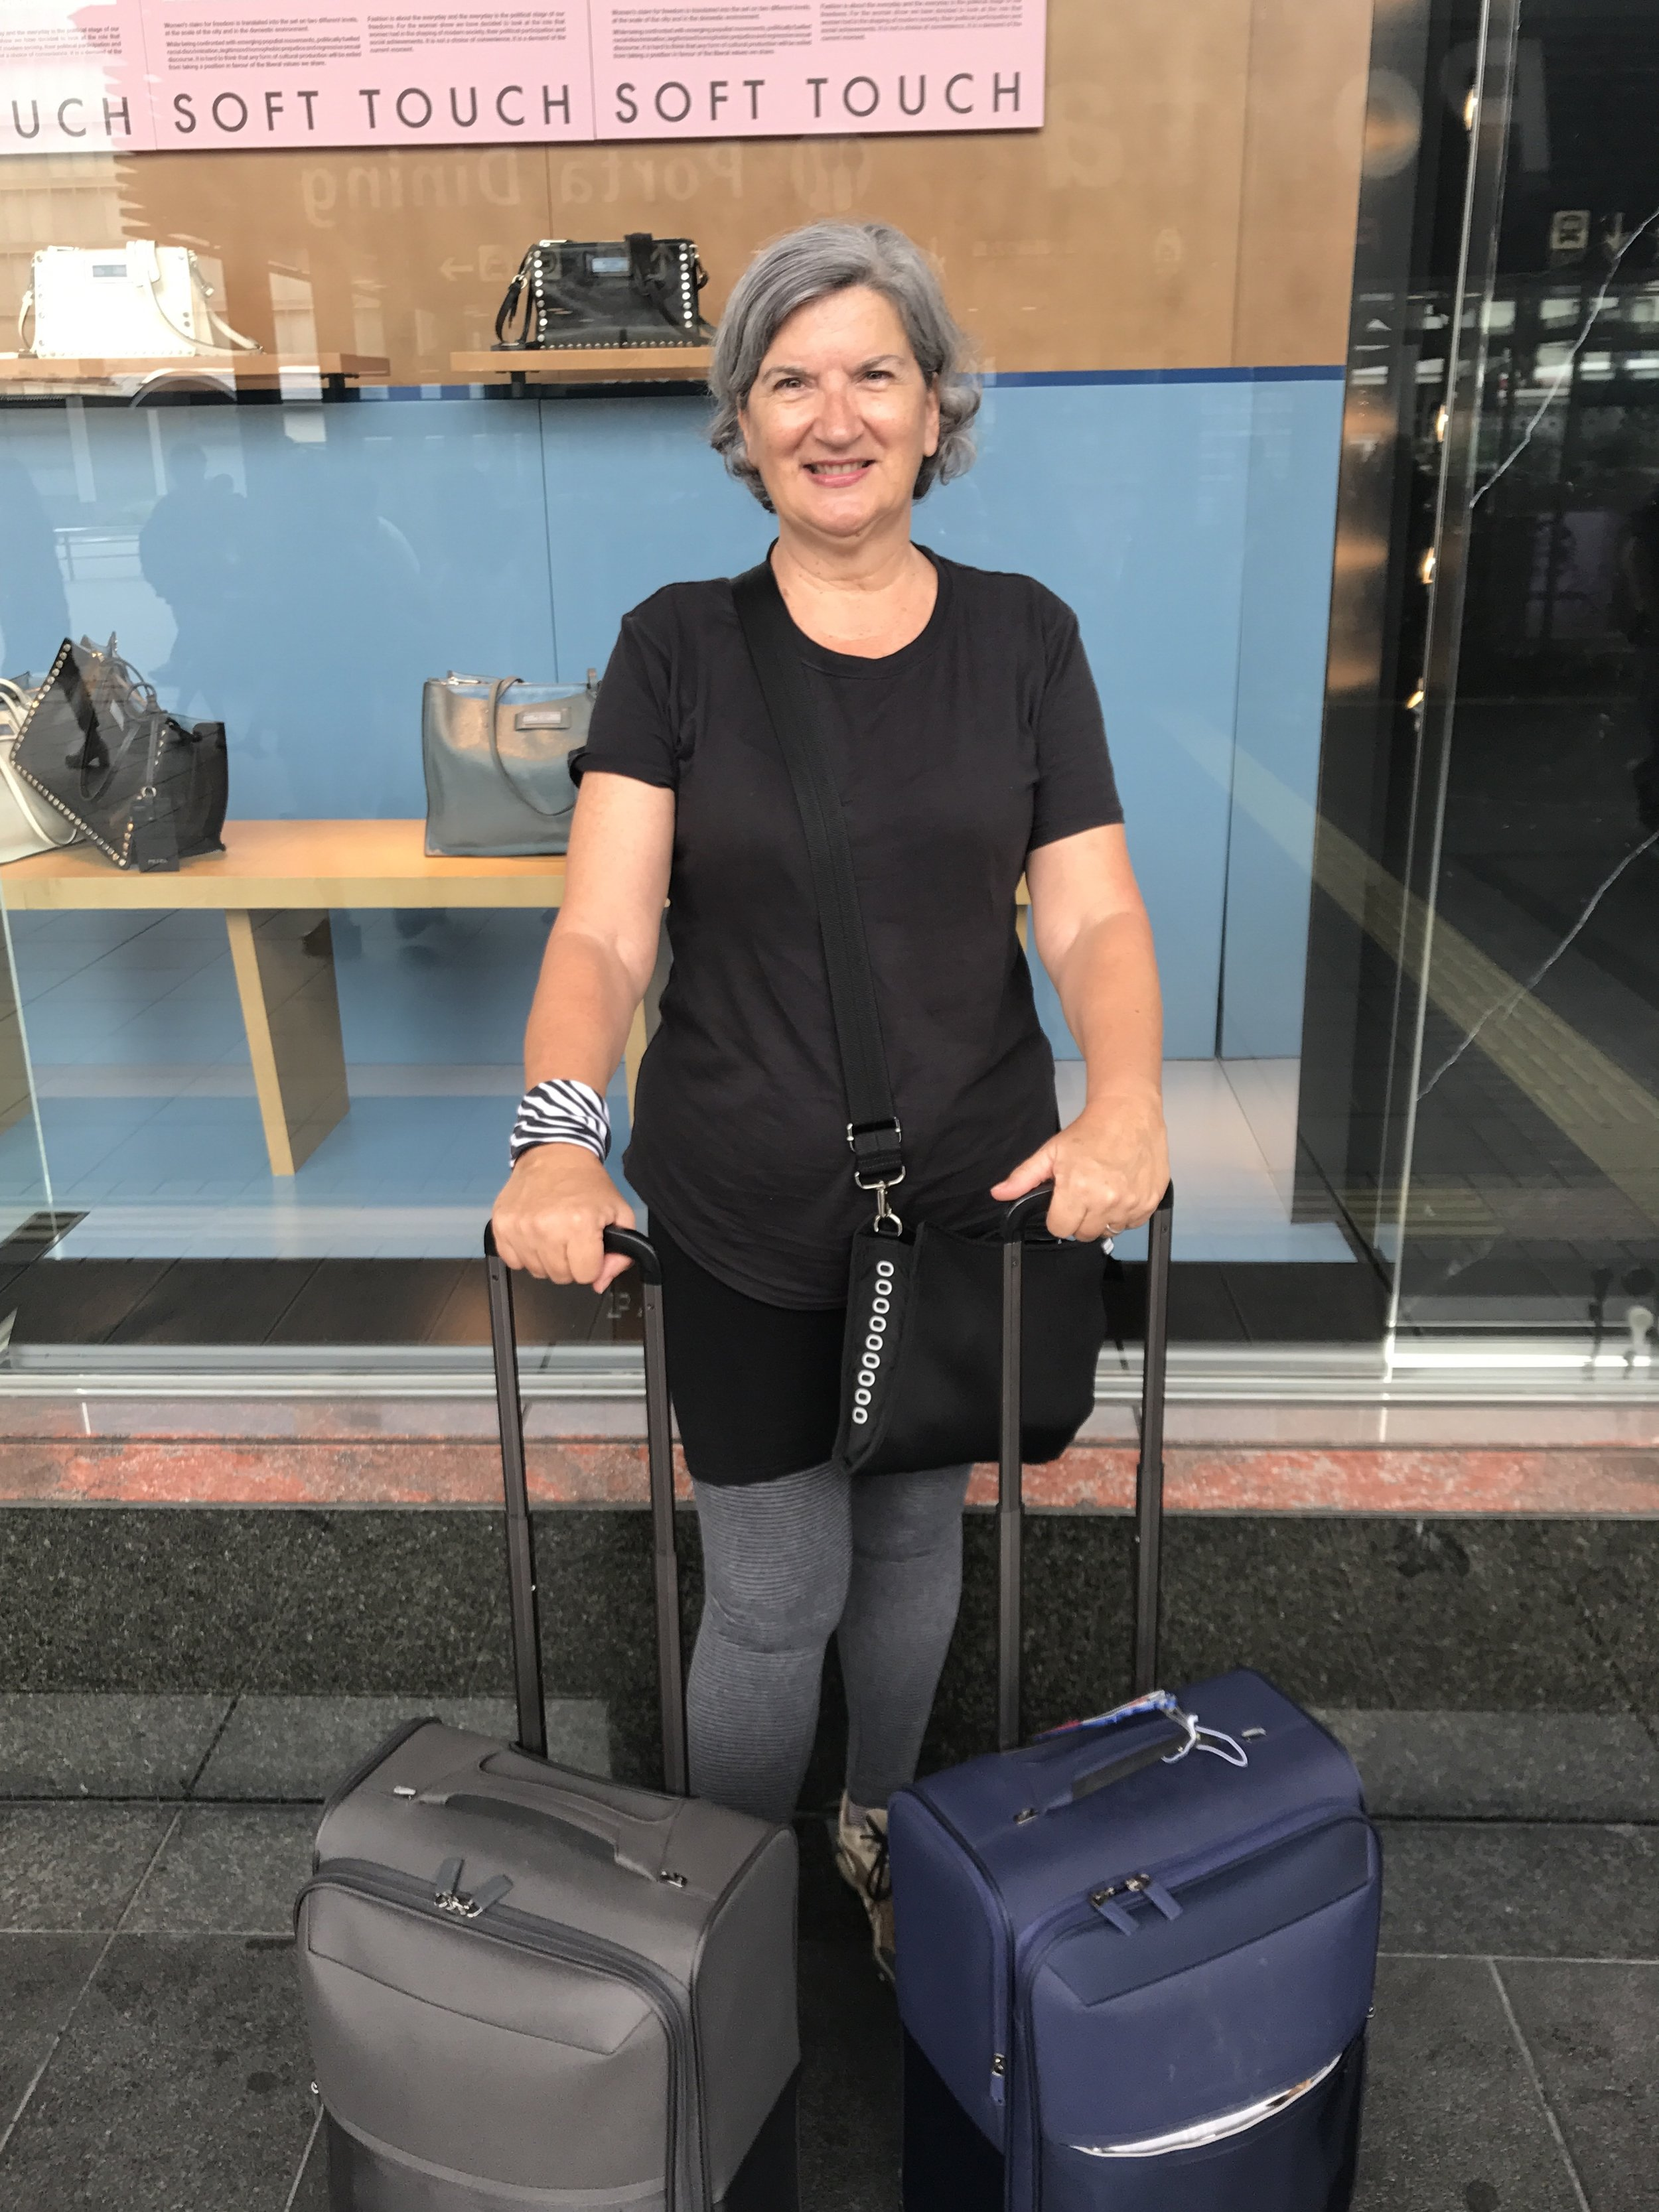 Here i am ready for a long haul trip from Kyoto to Tokyo, Melbourne and Canberra, wearing my typical on board wardrobe of leggings, shorts and t-shirt. Also showing off Mr PetMan and my carry-on luggage only: matching light Samonsite bags. And using my  Airpocket  as a handbag.